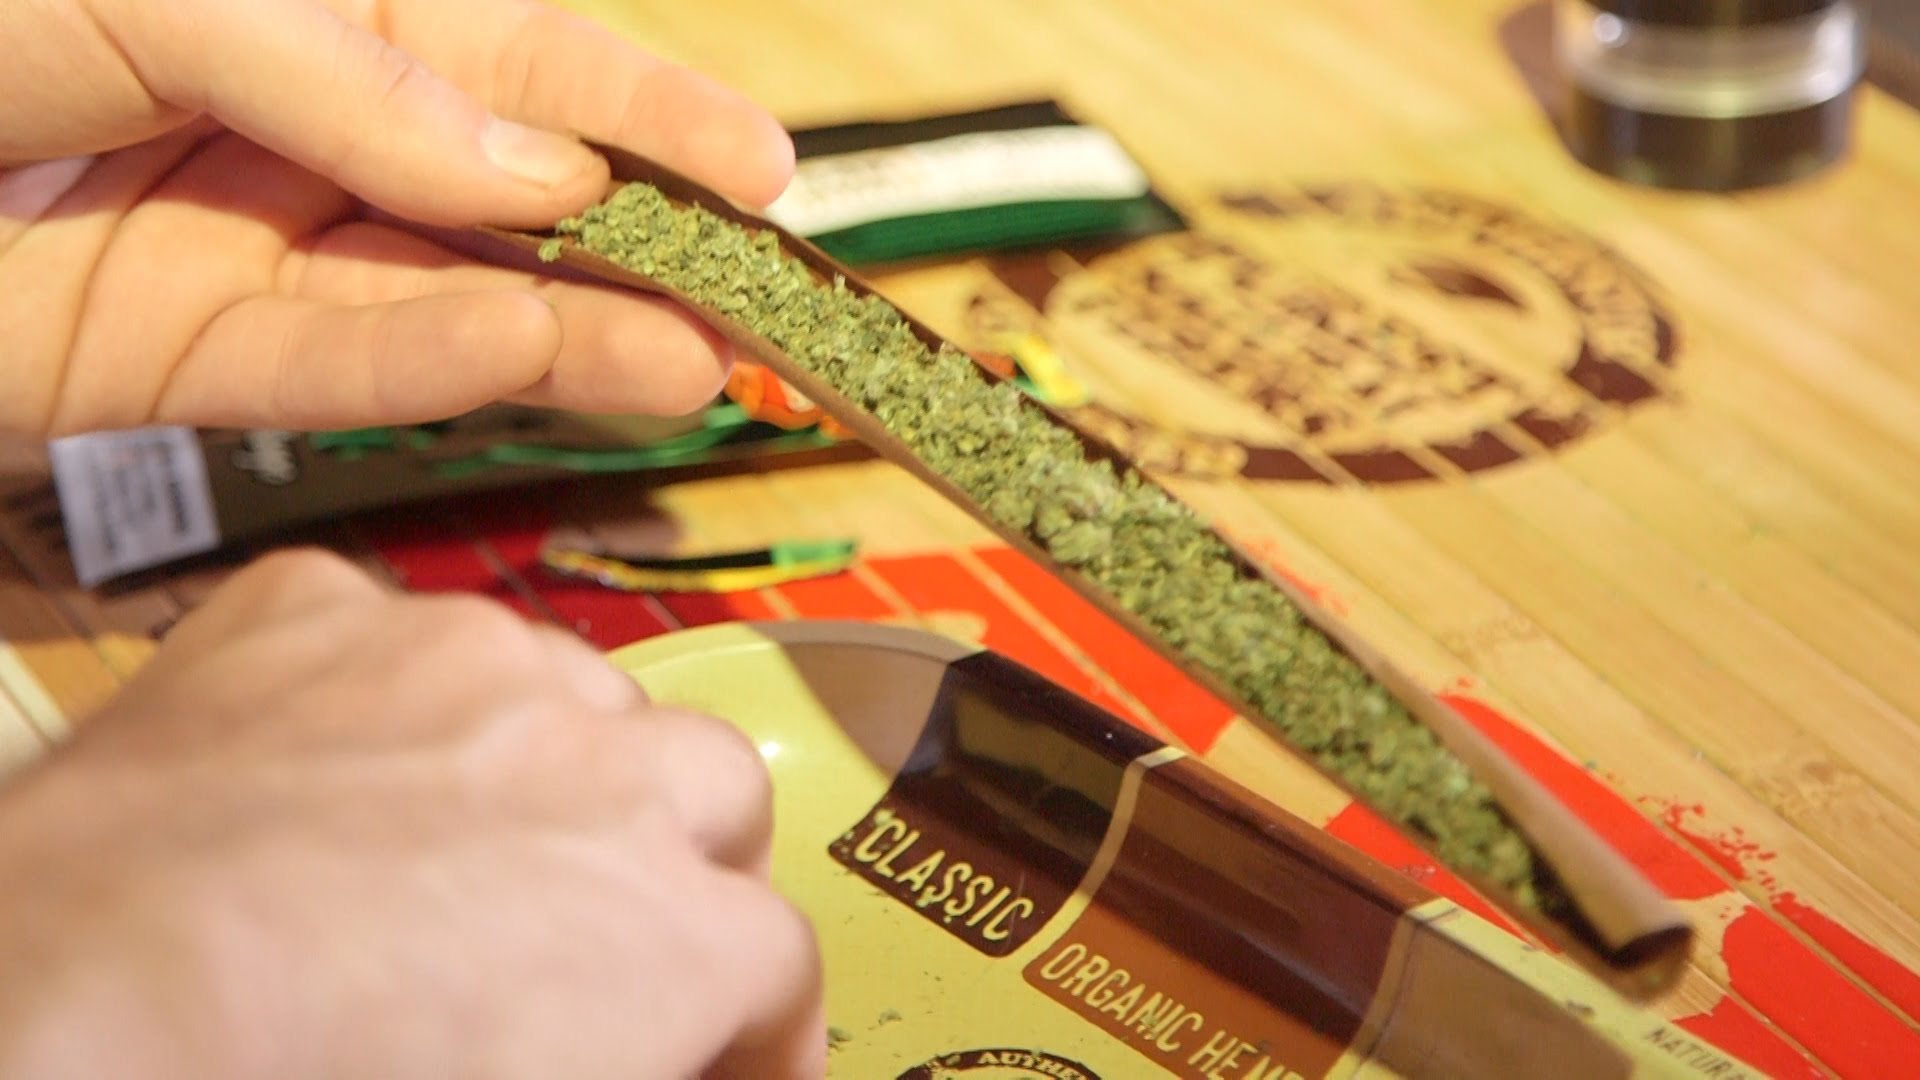 How to Roll & Make Your Own Extendo Blunt: Cannabasics #20